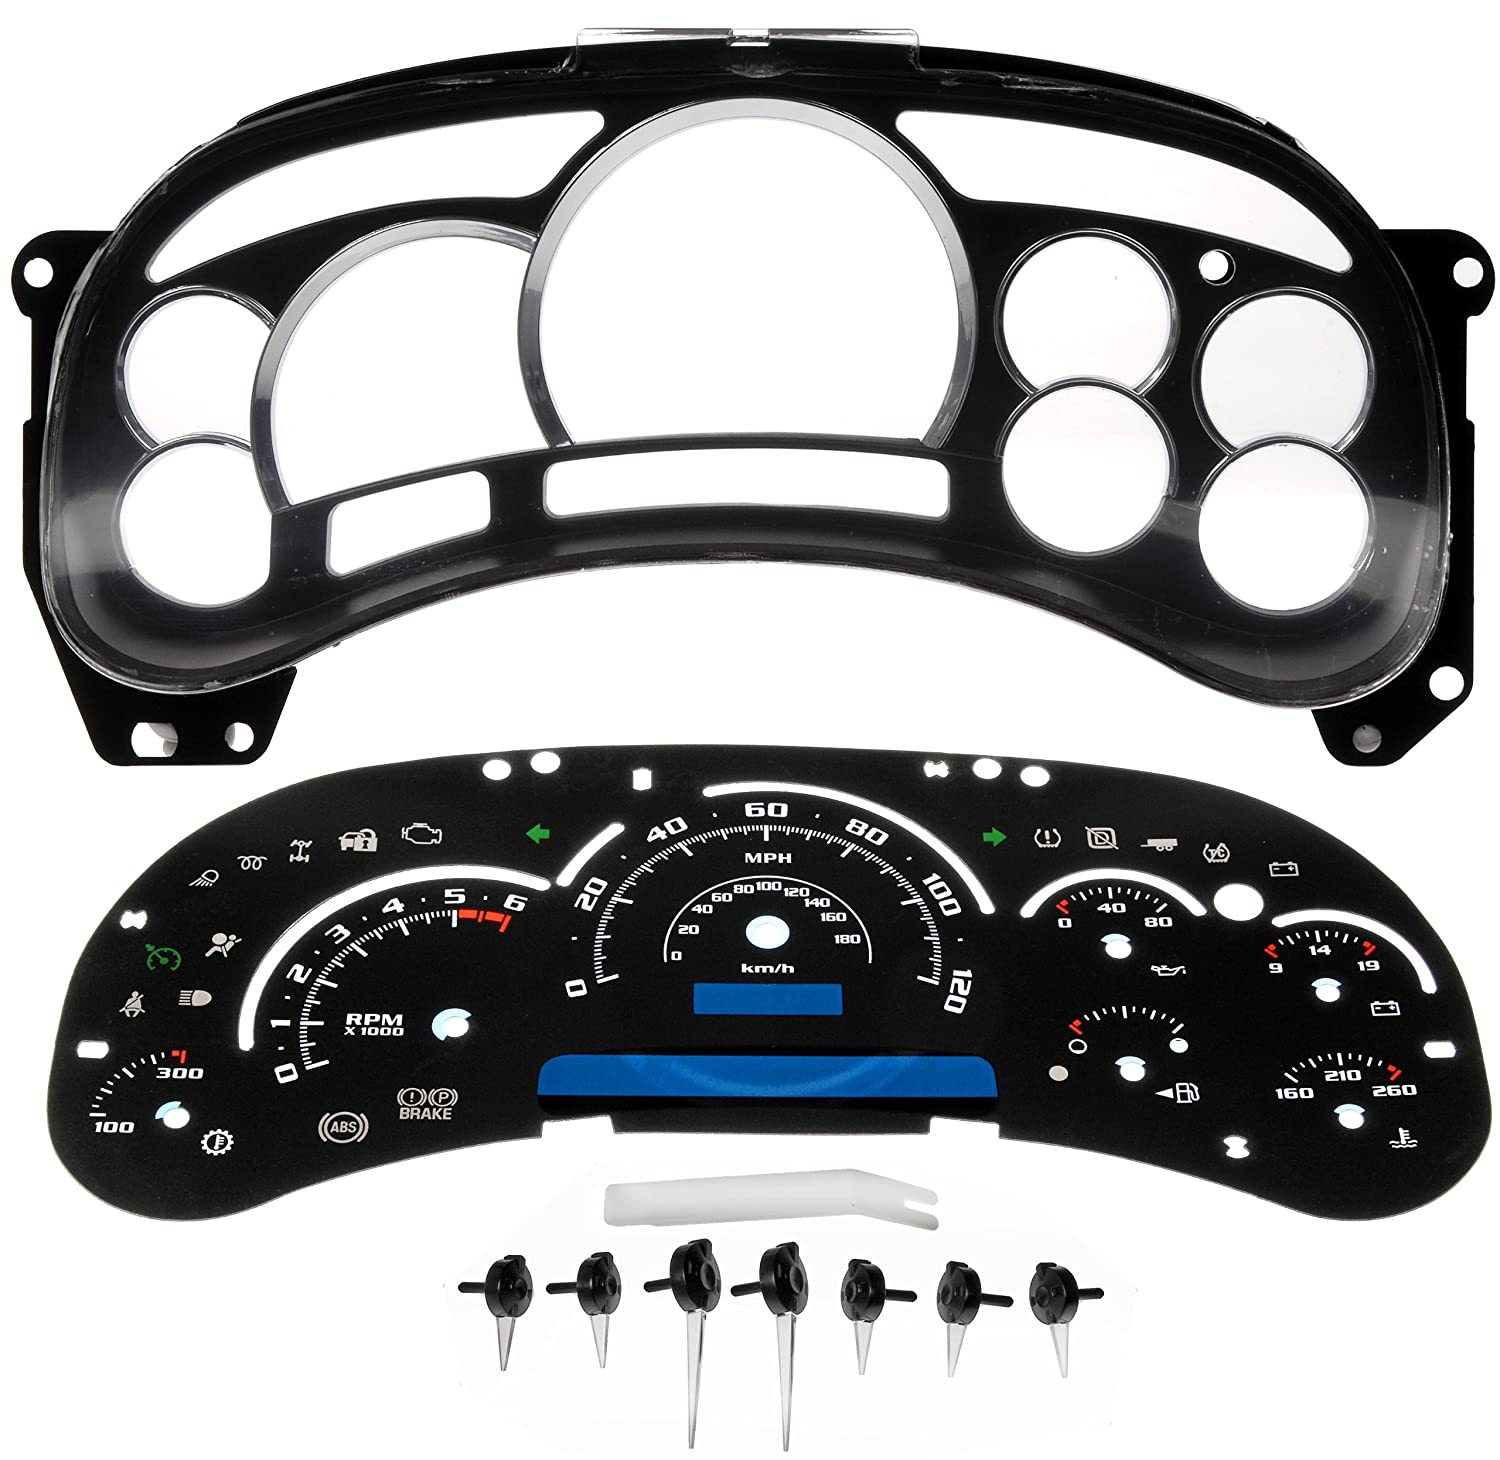 Dorman 10 0104b Instrument Cluster Upgrade Kit Automotive 1954 Chevy Truck Gauge